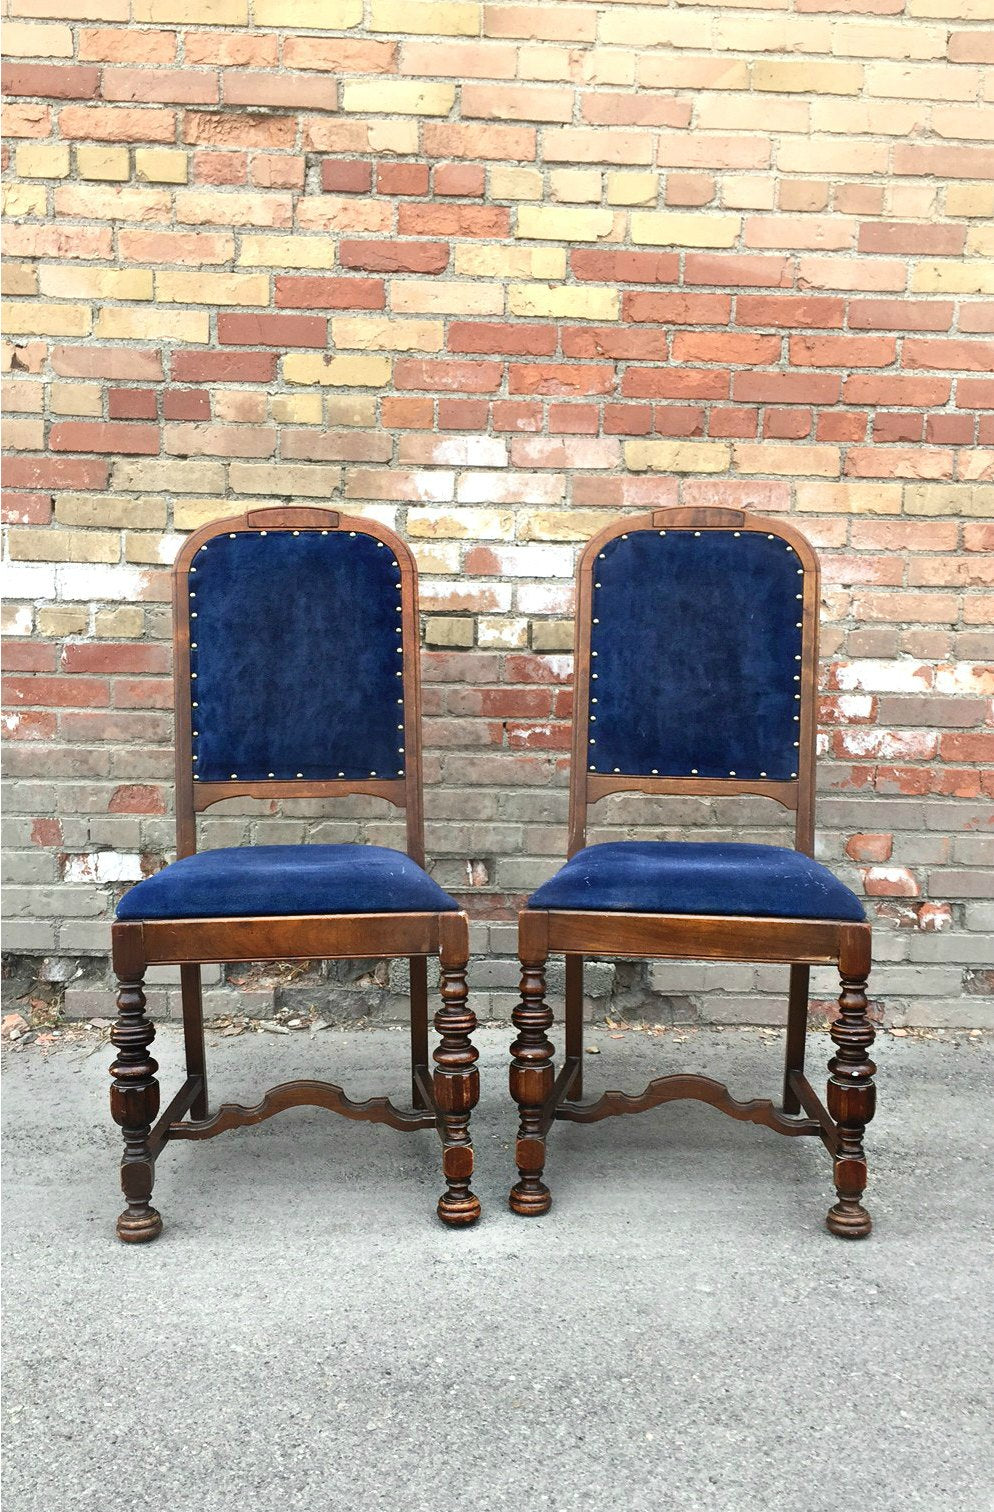 Blue suede chairs